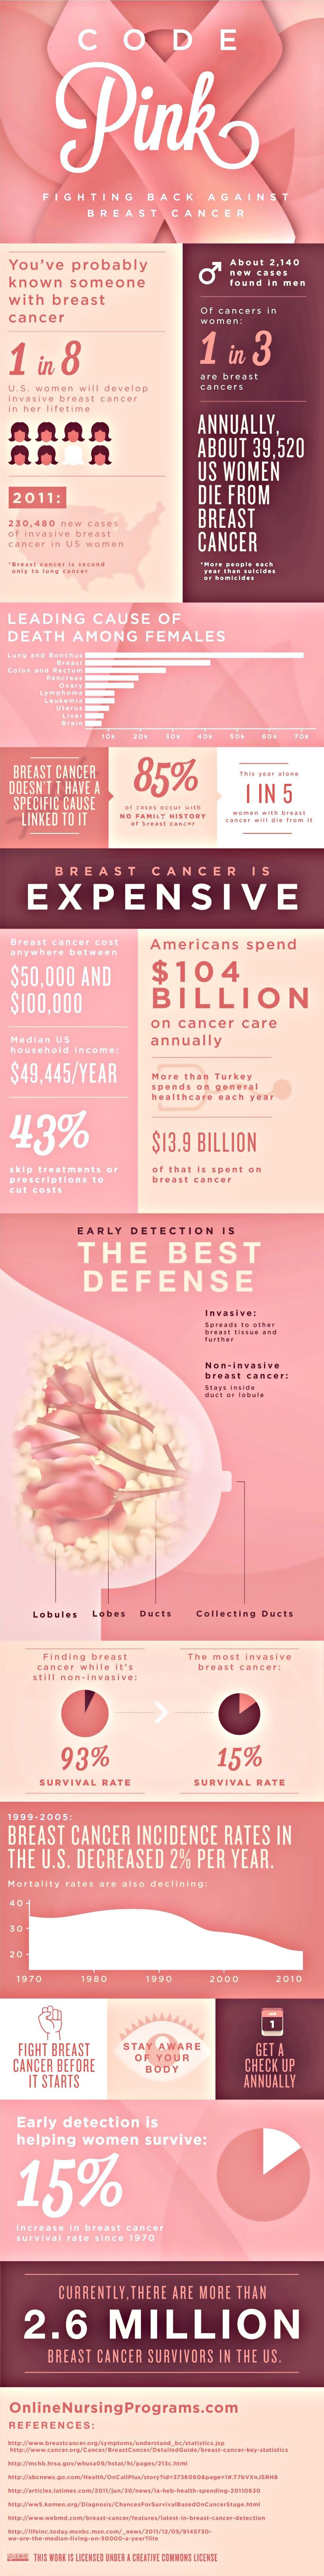 Fighting Back Against Breast Cancer Infographic